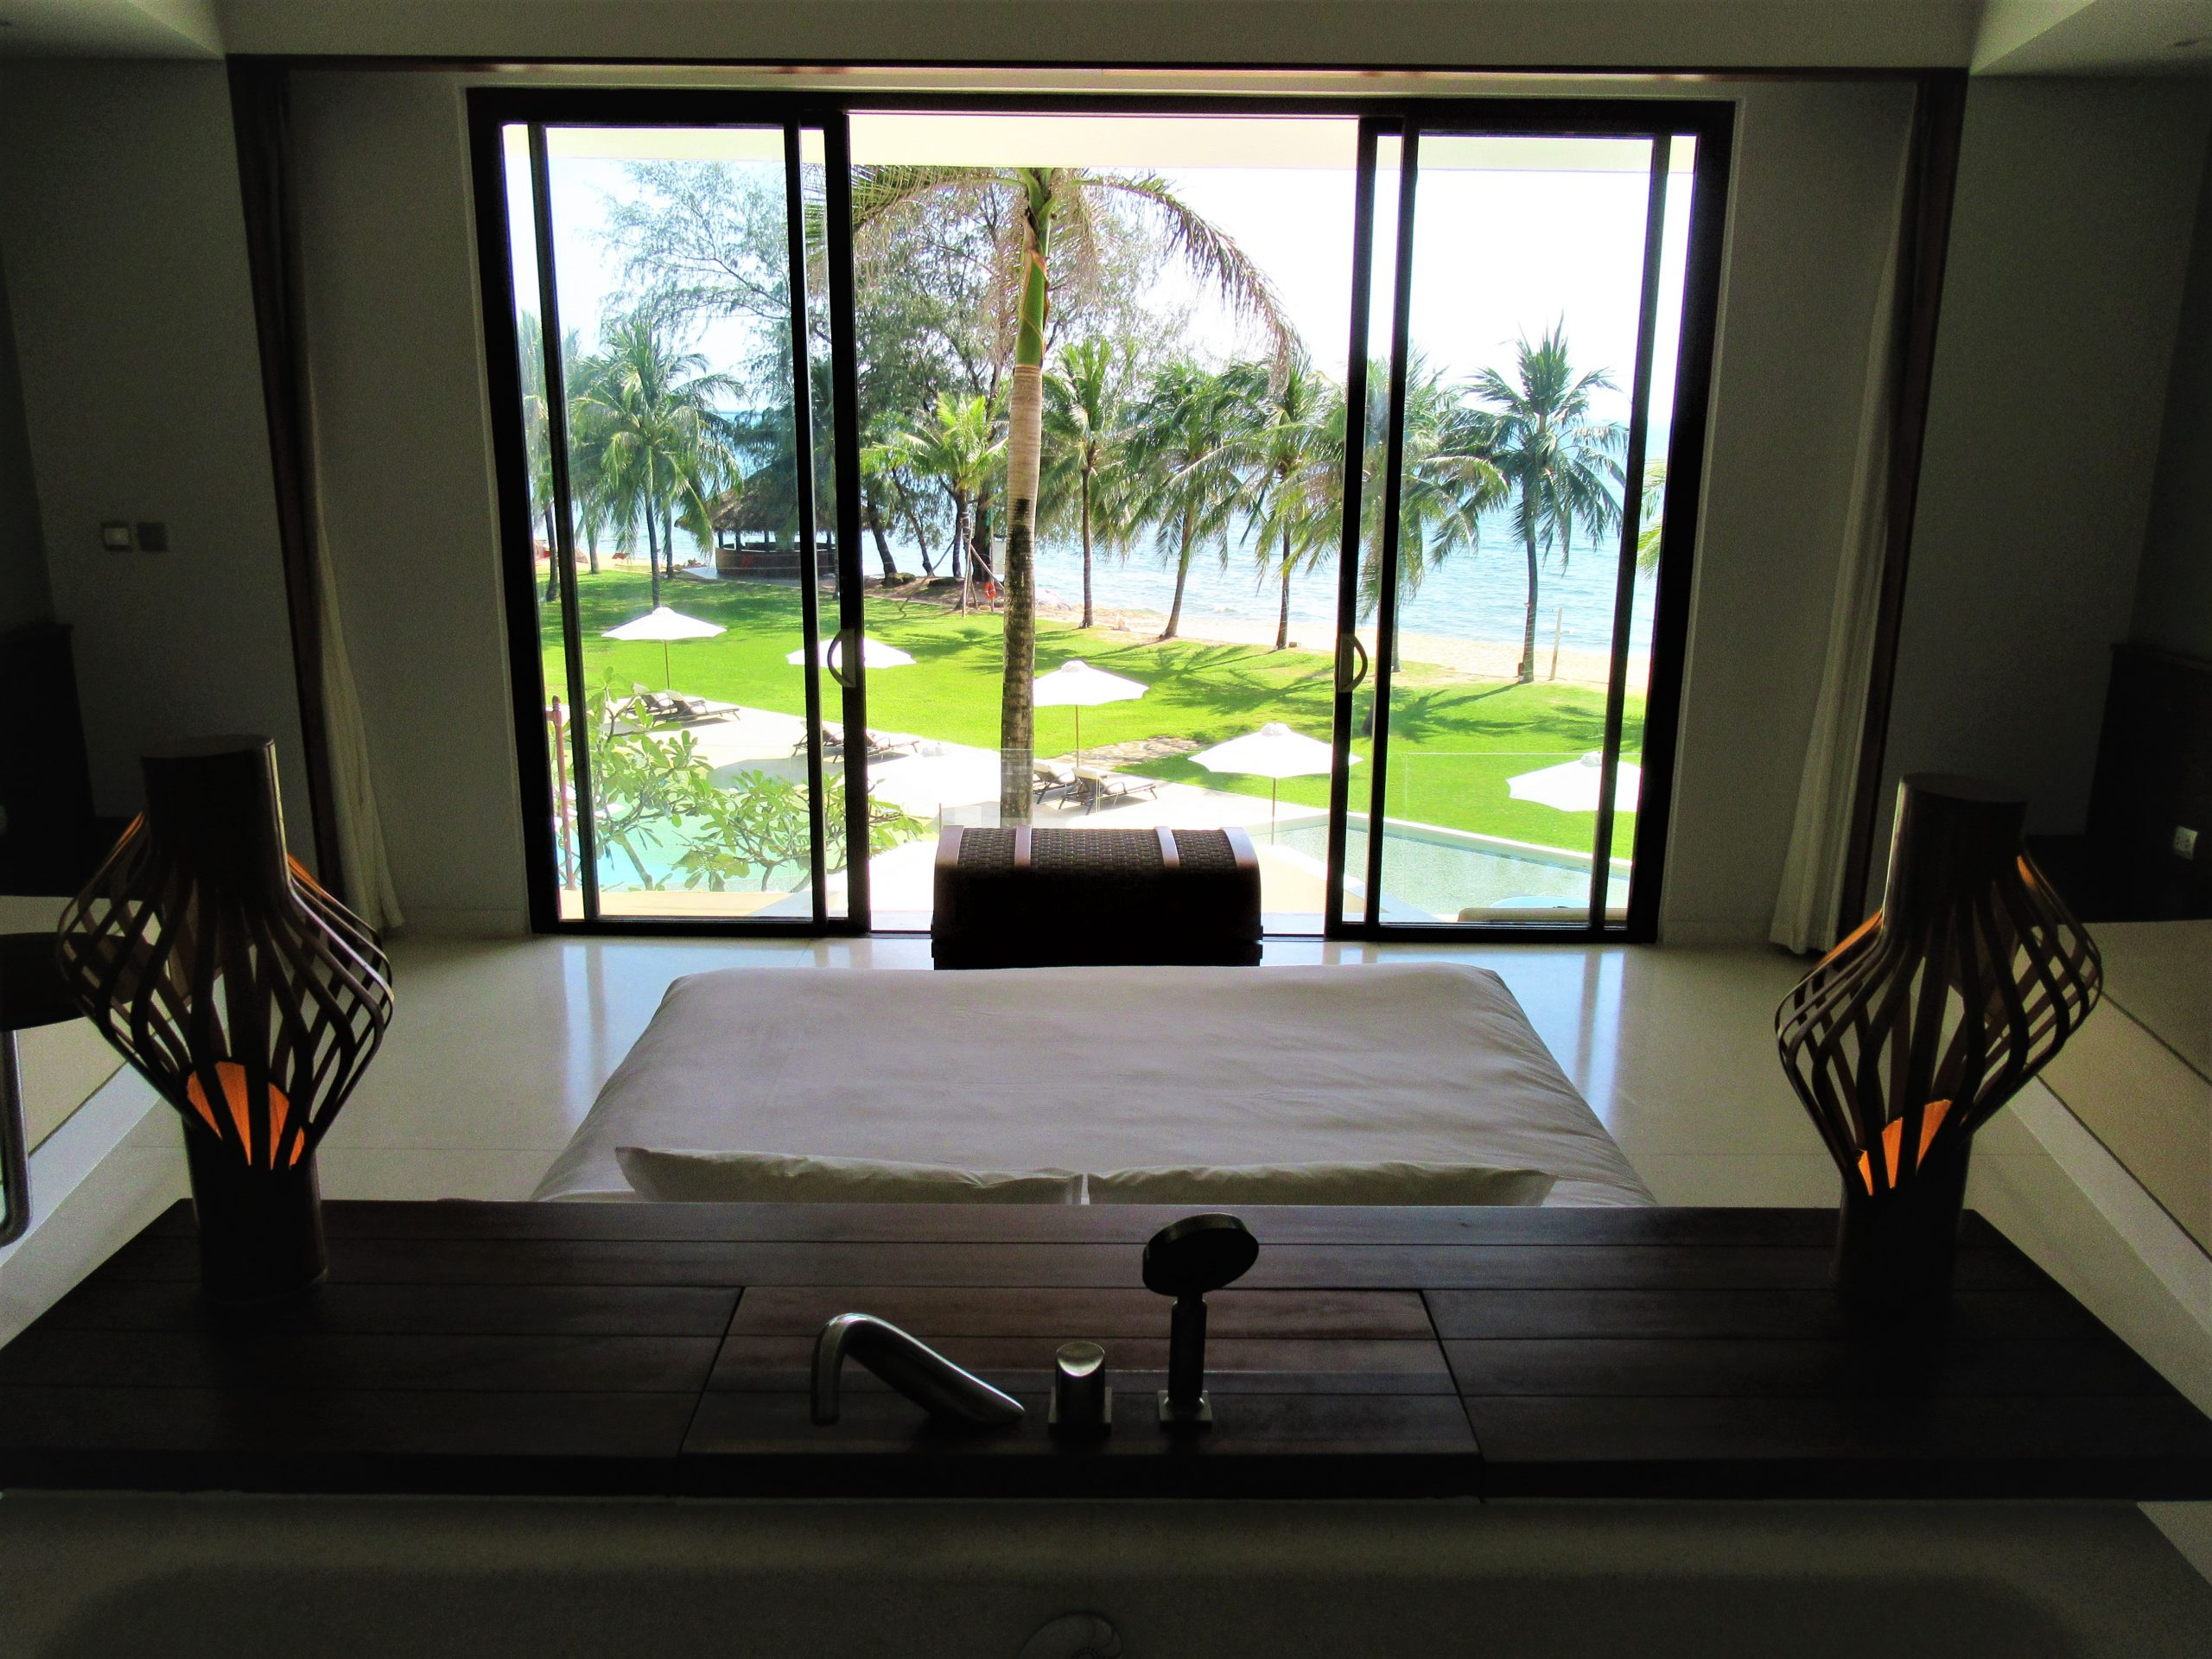 Guest room in main building, The Shells Resort, Phu Quoc Island, Vietnam